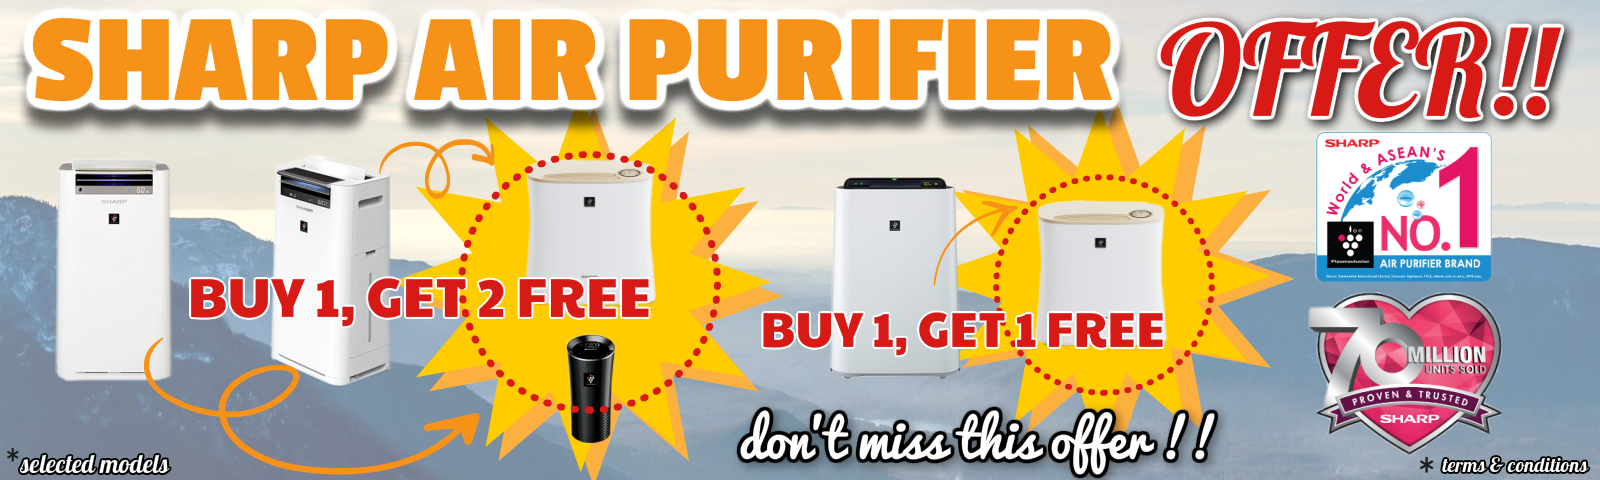 Sharp air purifier on Promo!!